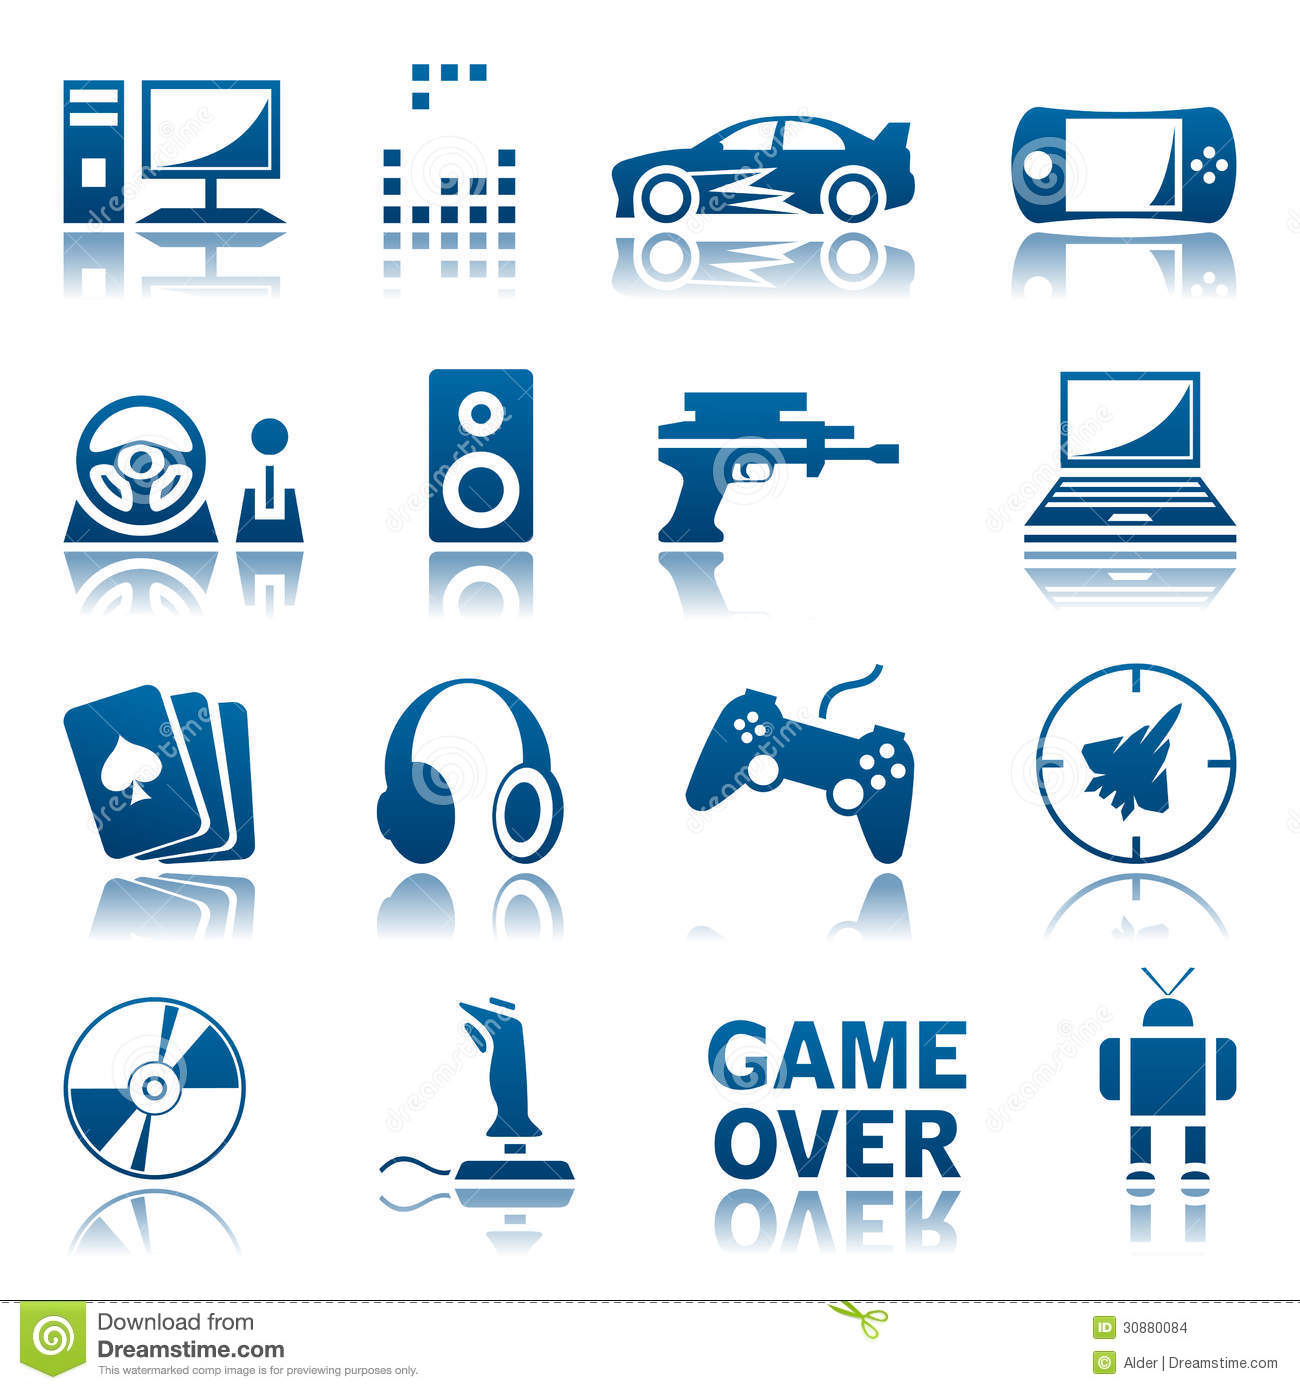 plane games pc free download with Stock Images  Puter Games Icon Set Icons Image30880084 on Flight Simulator Land Store Shelves Distribution Agreement besides 4118 furthermore operationstormfront moreover Details moreover Stock Images  puter Games Icon Set Icons Image30880084.